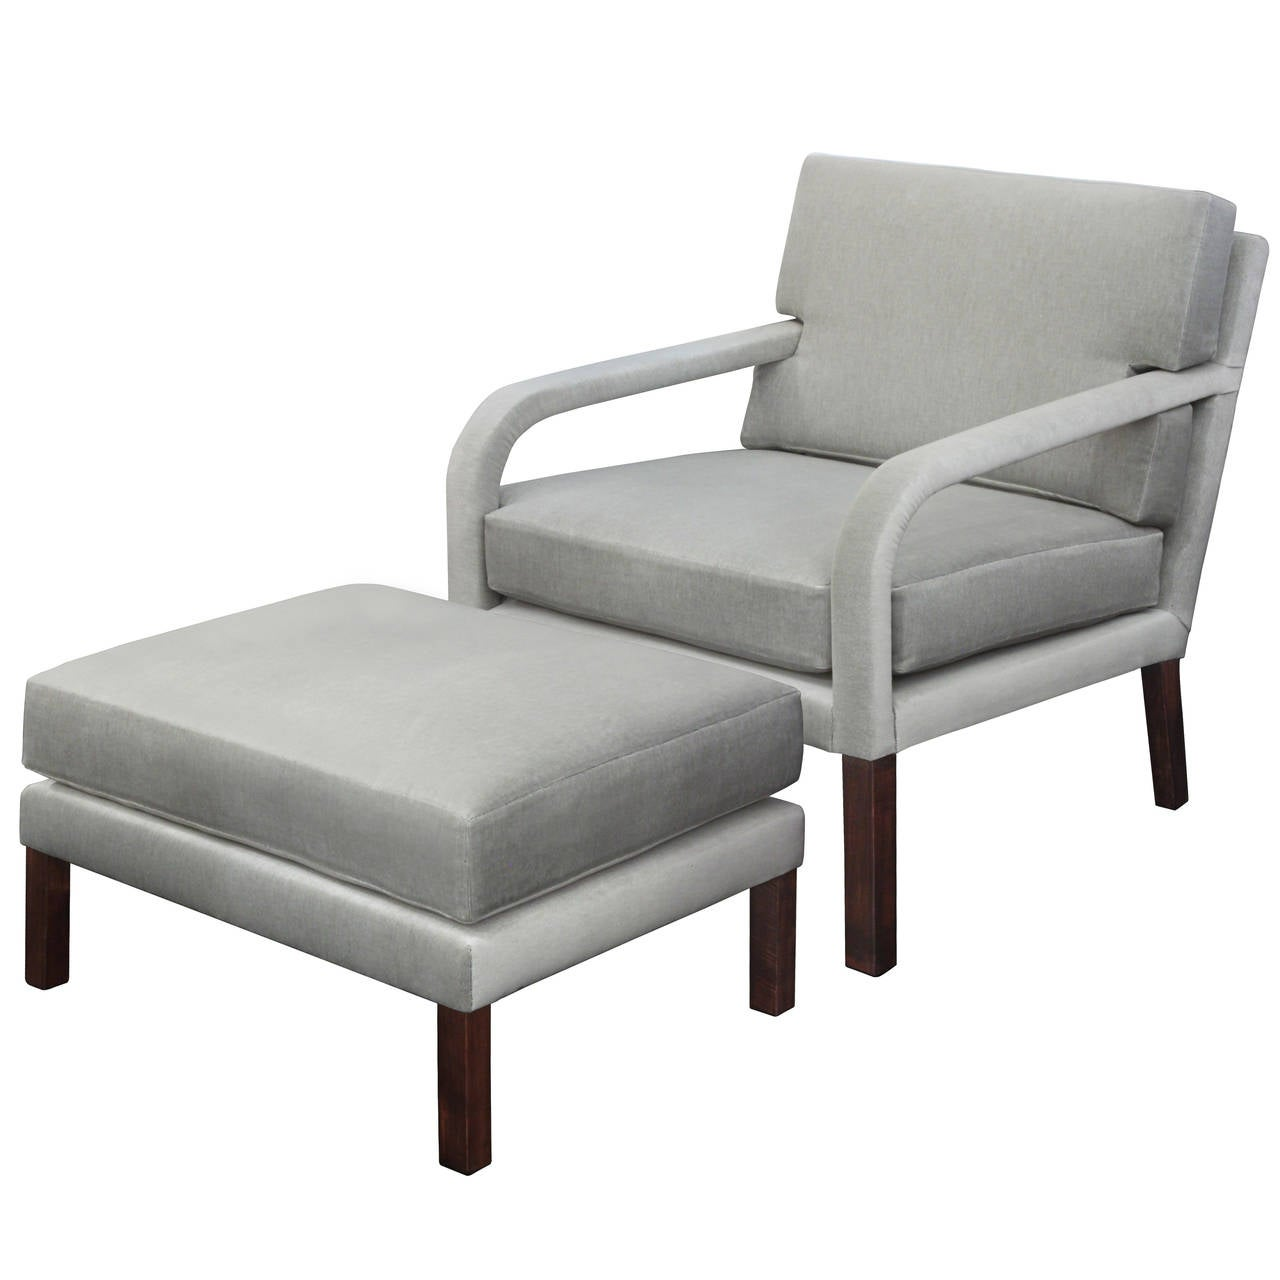 chair and ottoman with upholstered arms by directional